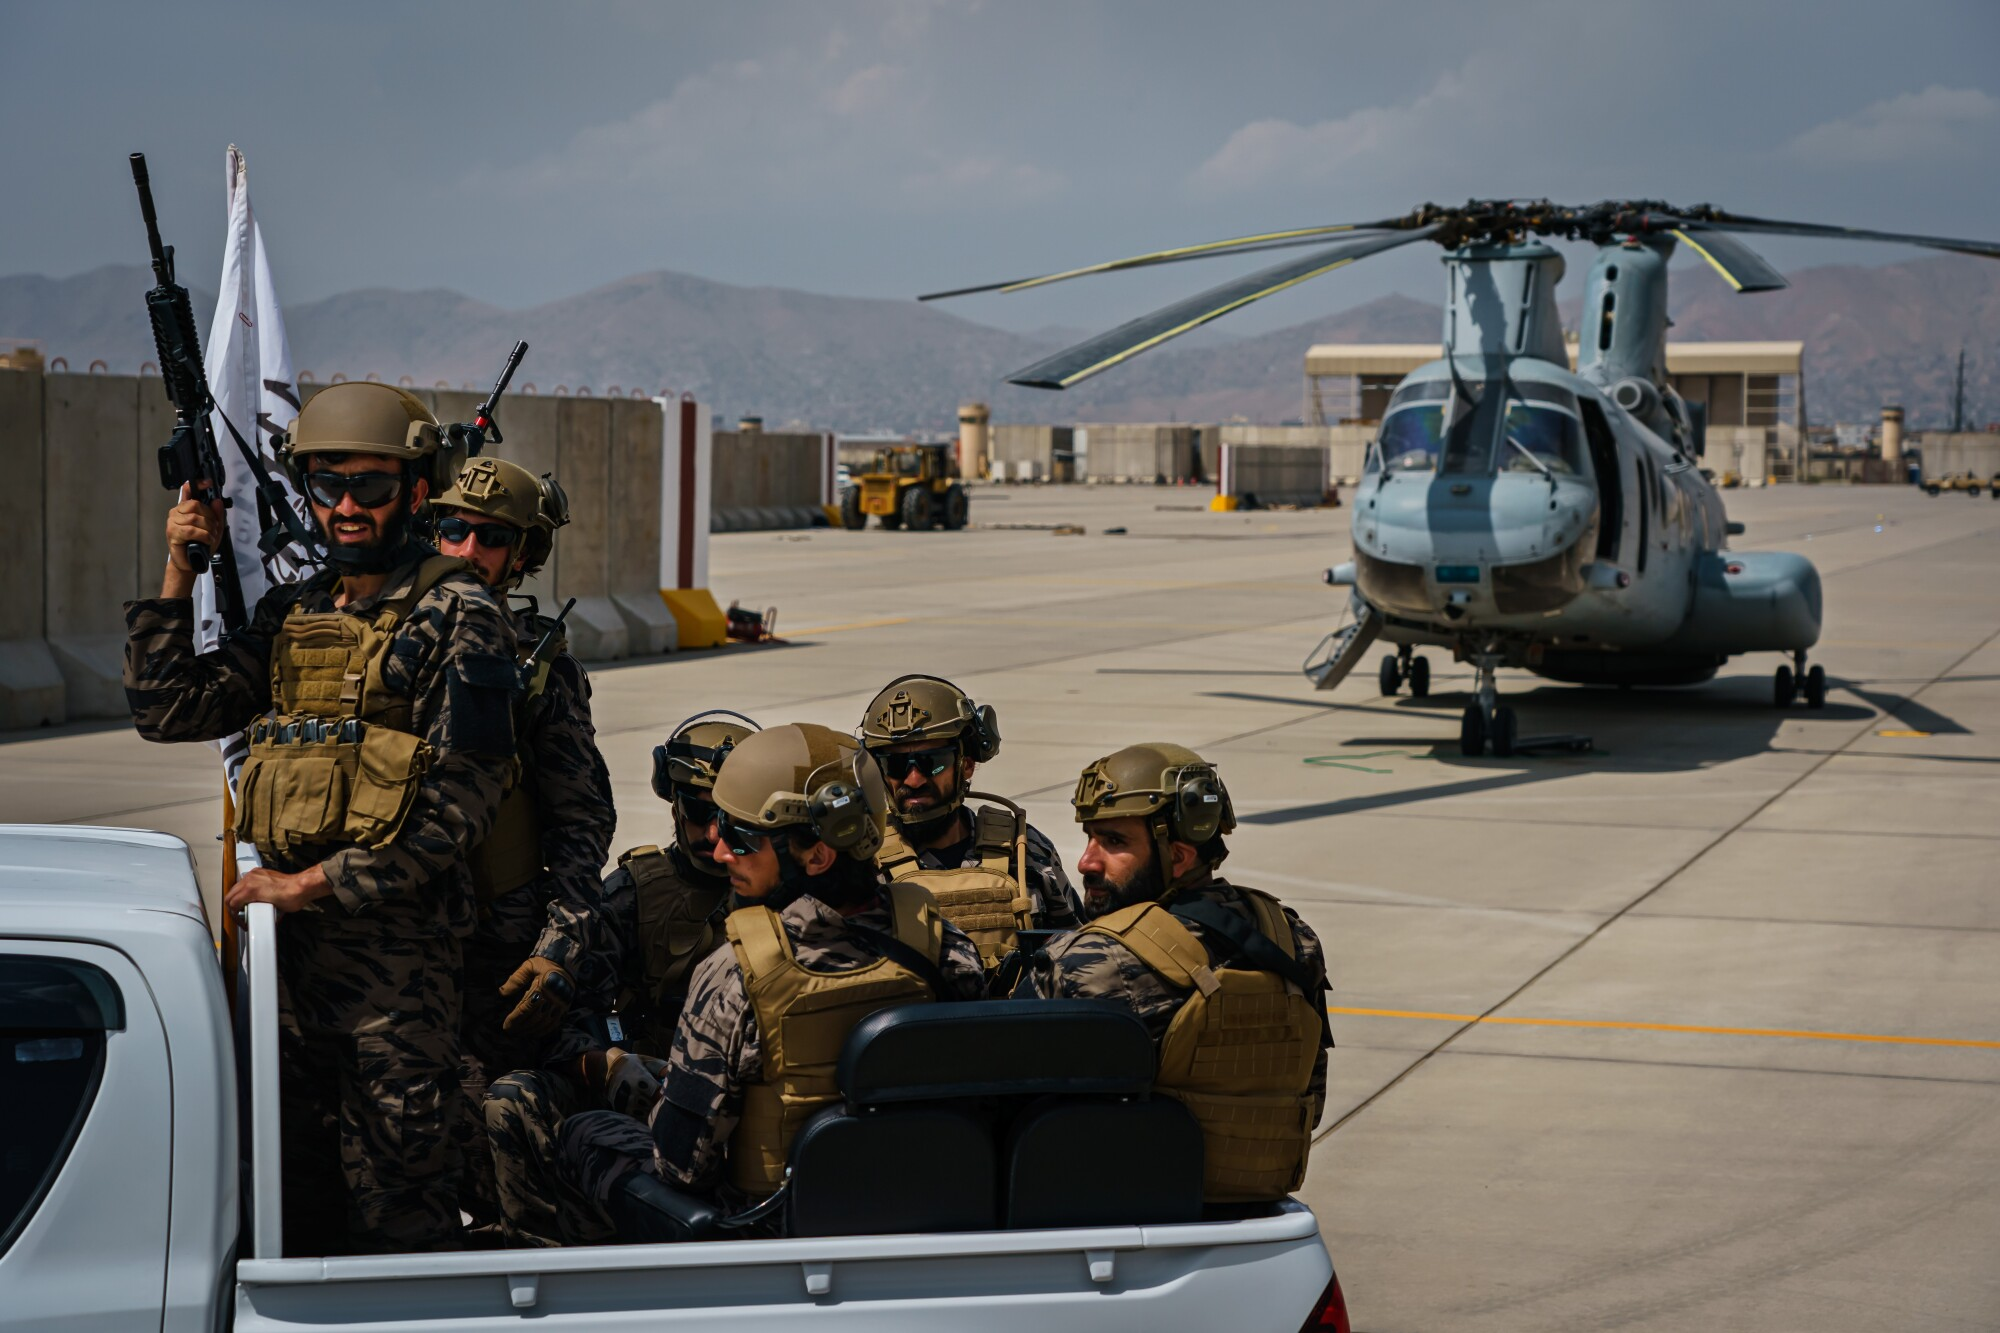 Armed Taliban fighters ride in a truck past a helicopter left at Hamid Karzai International Airport in Kabul